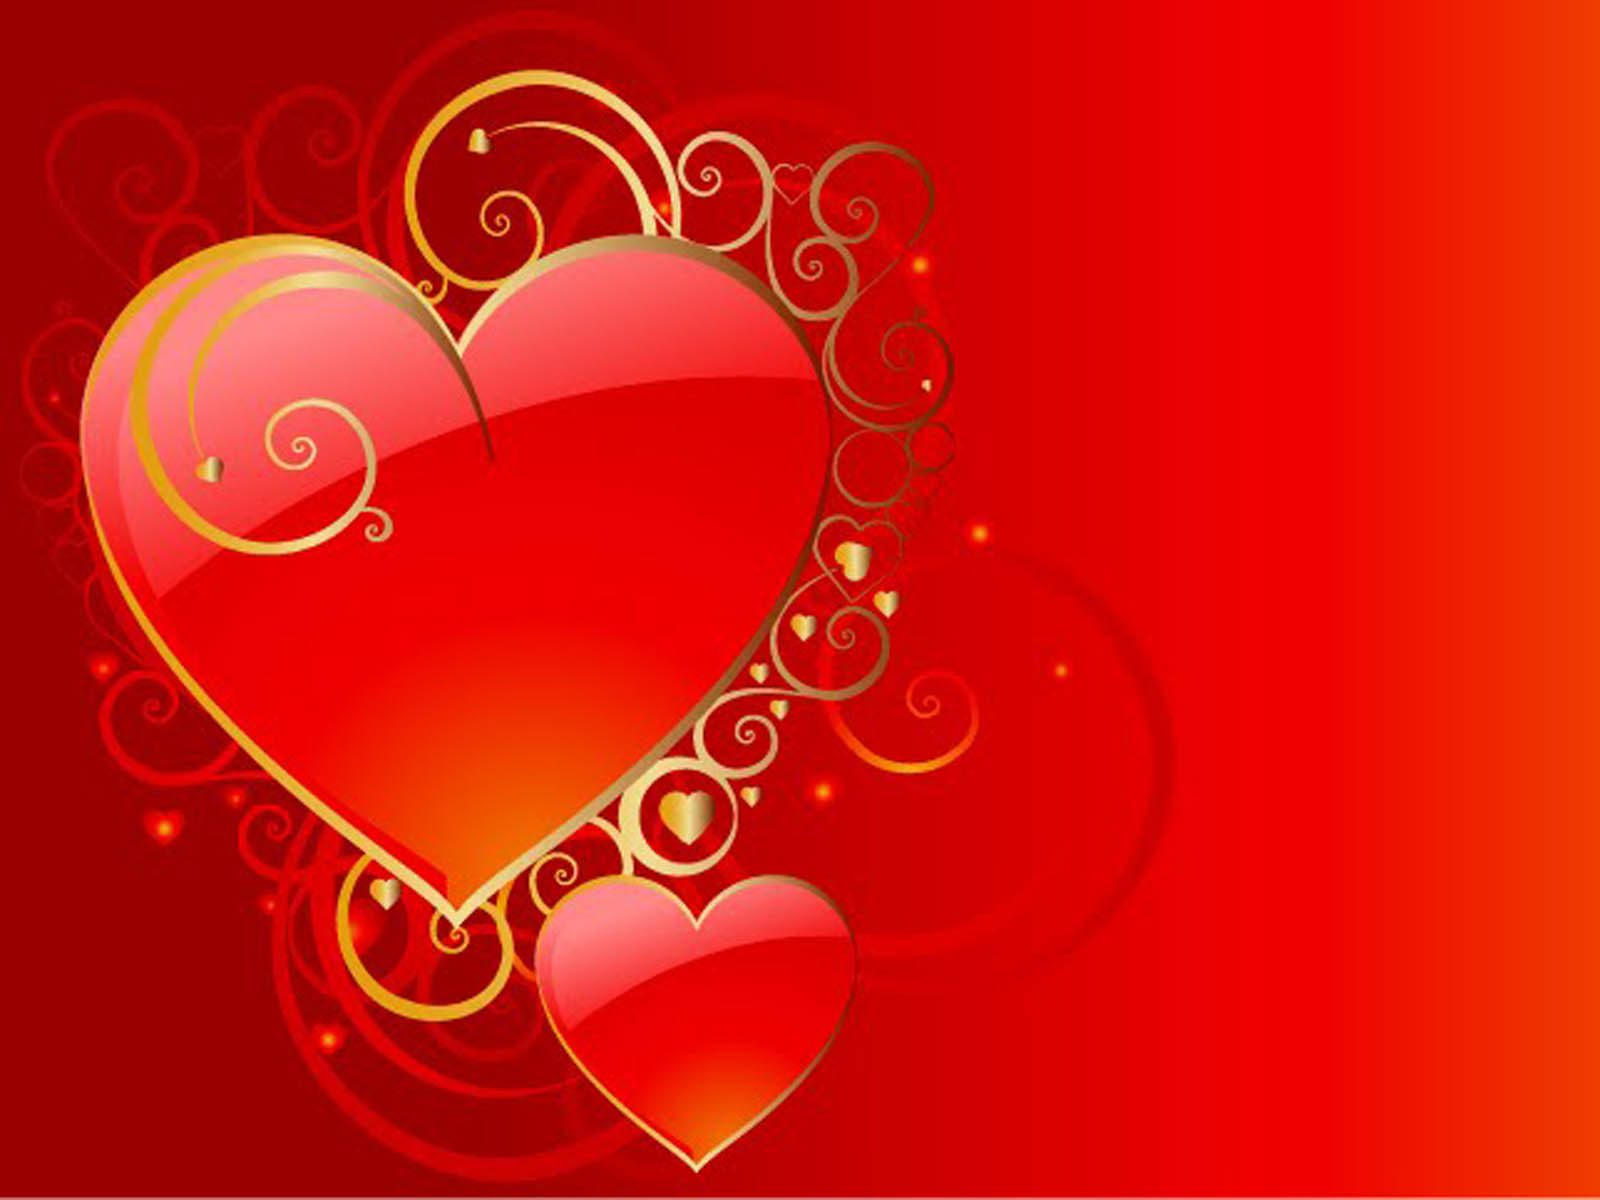 Love Heart Wallpaper Background : wallpapers: Love Heart Wallpapers